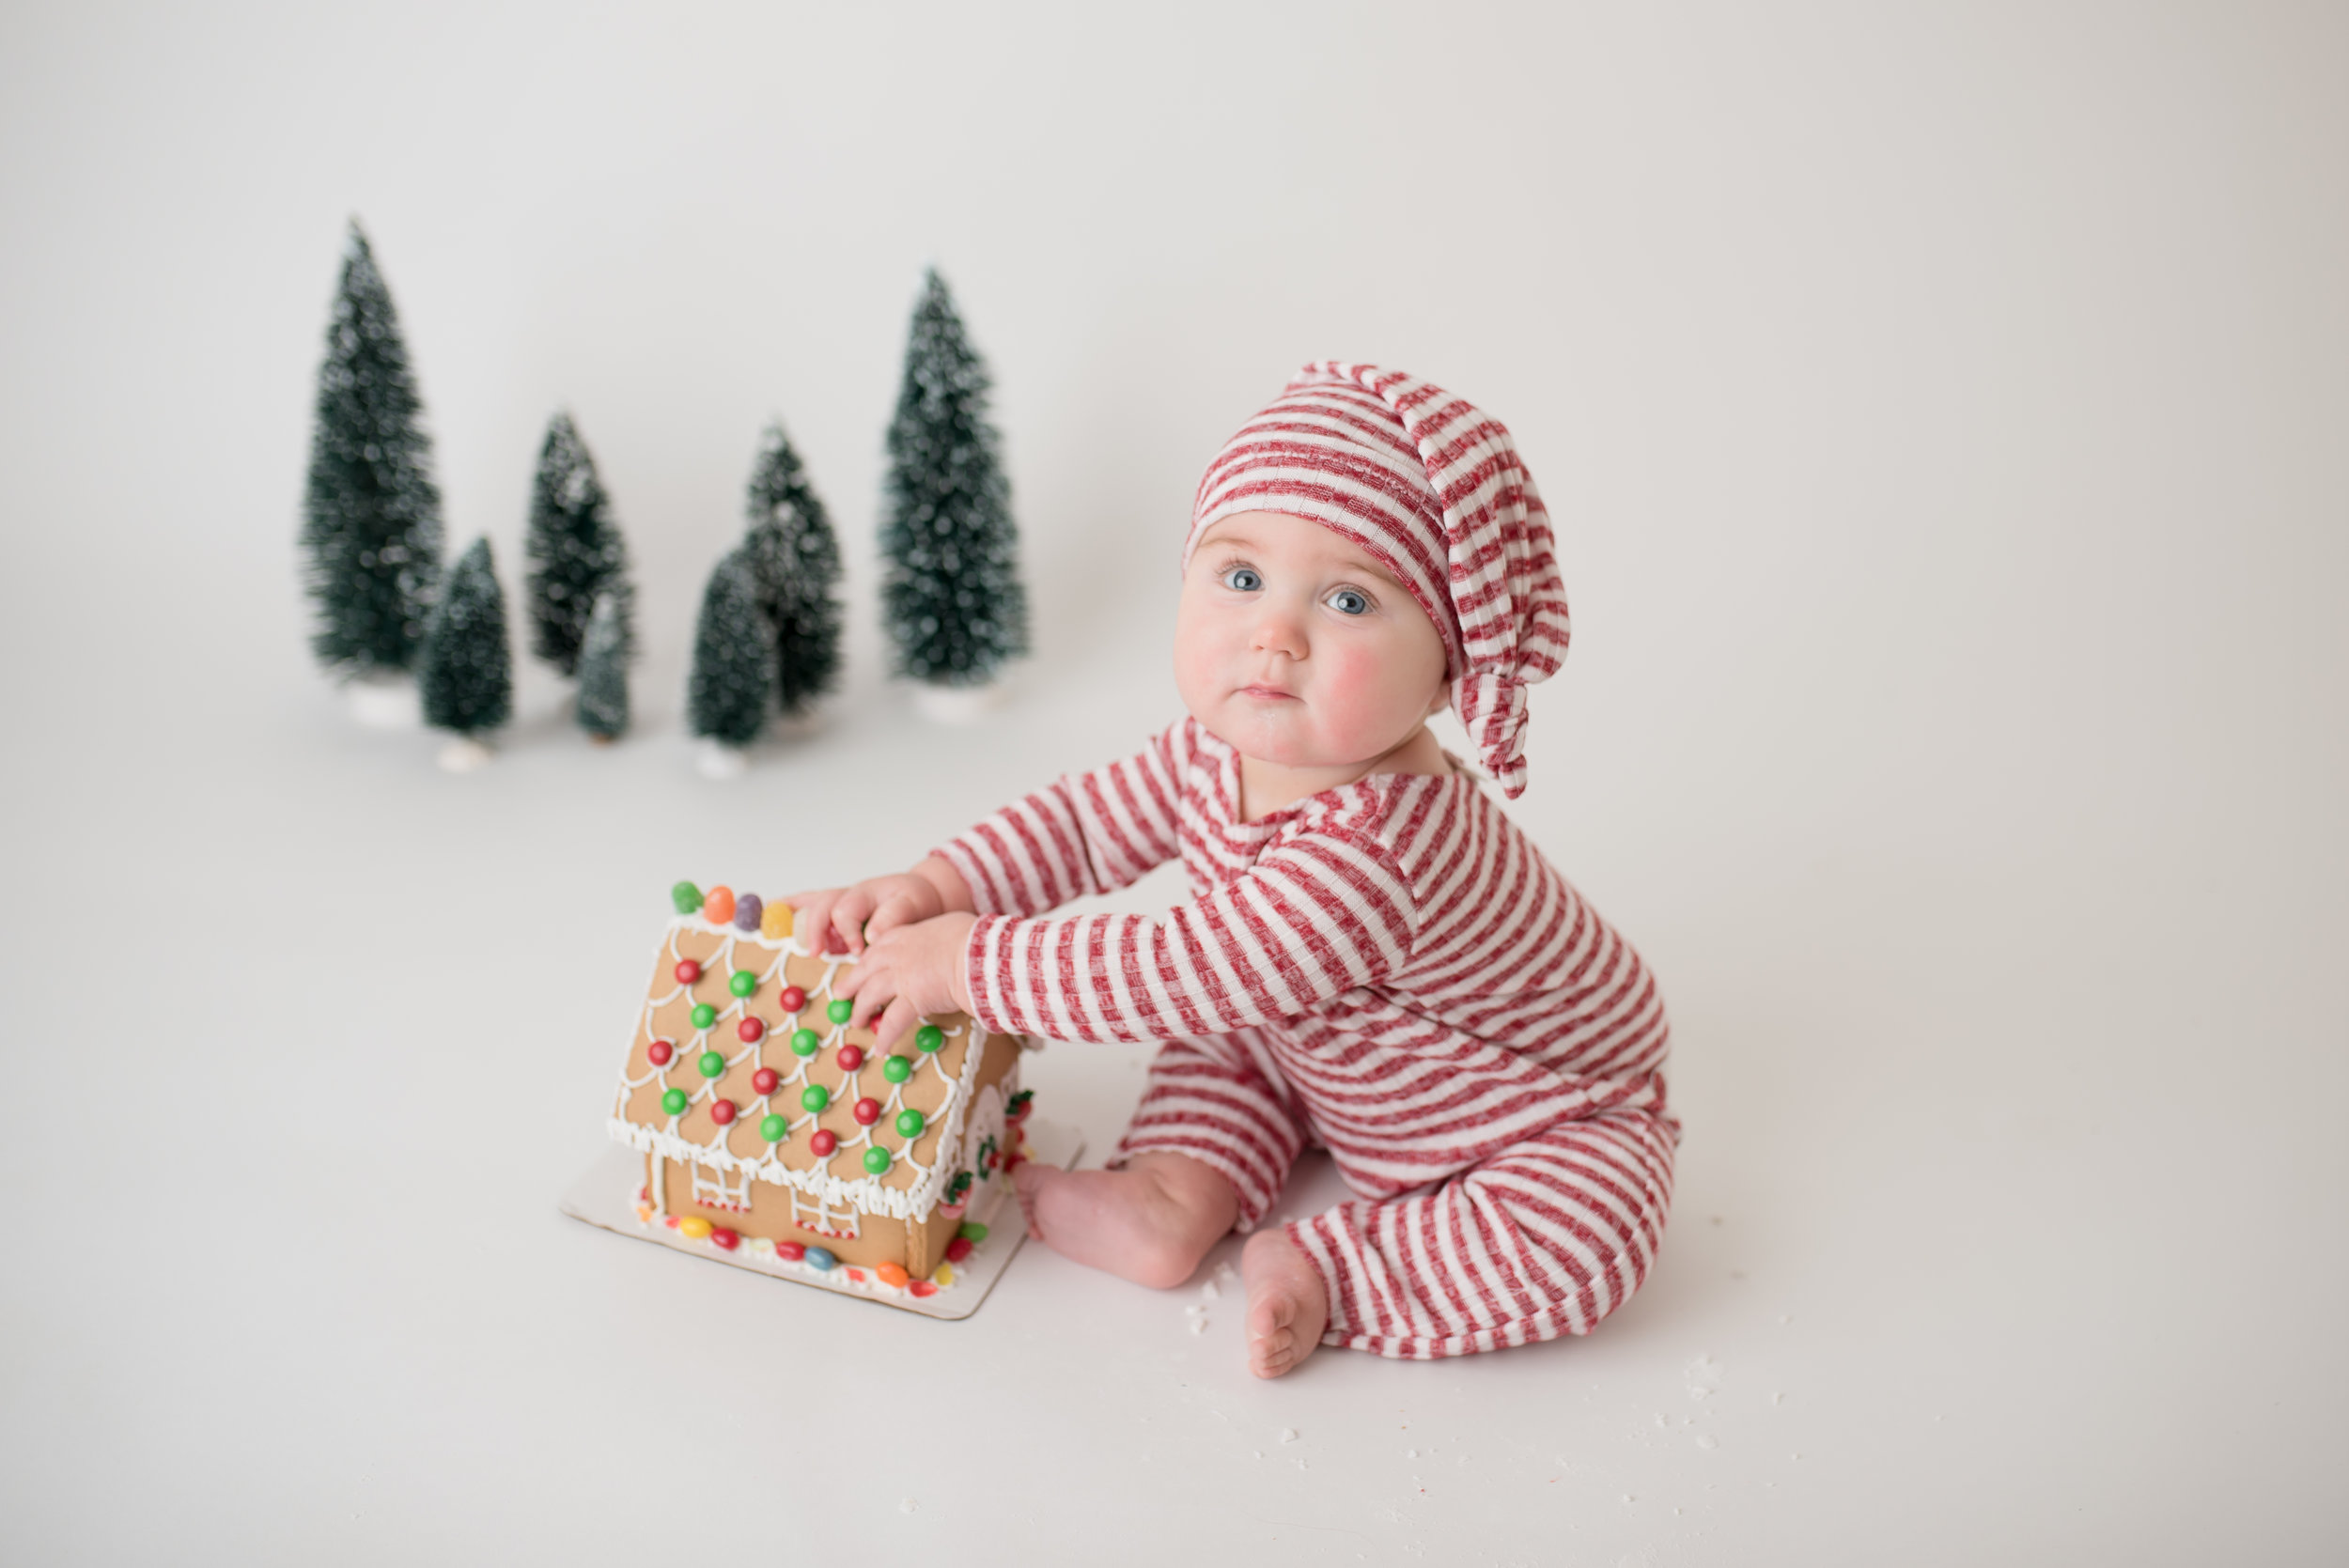 nicole starr photography, christmas photo session, saratoga springs baby photographer